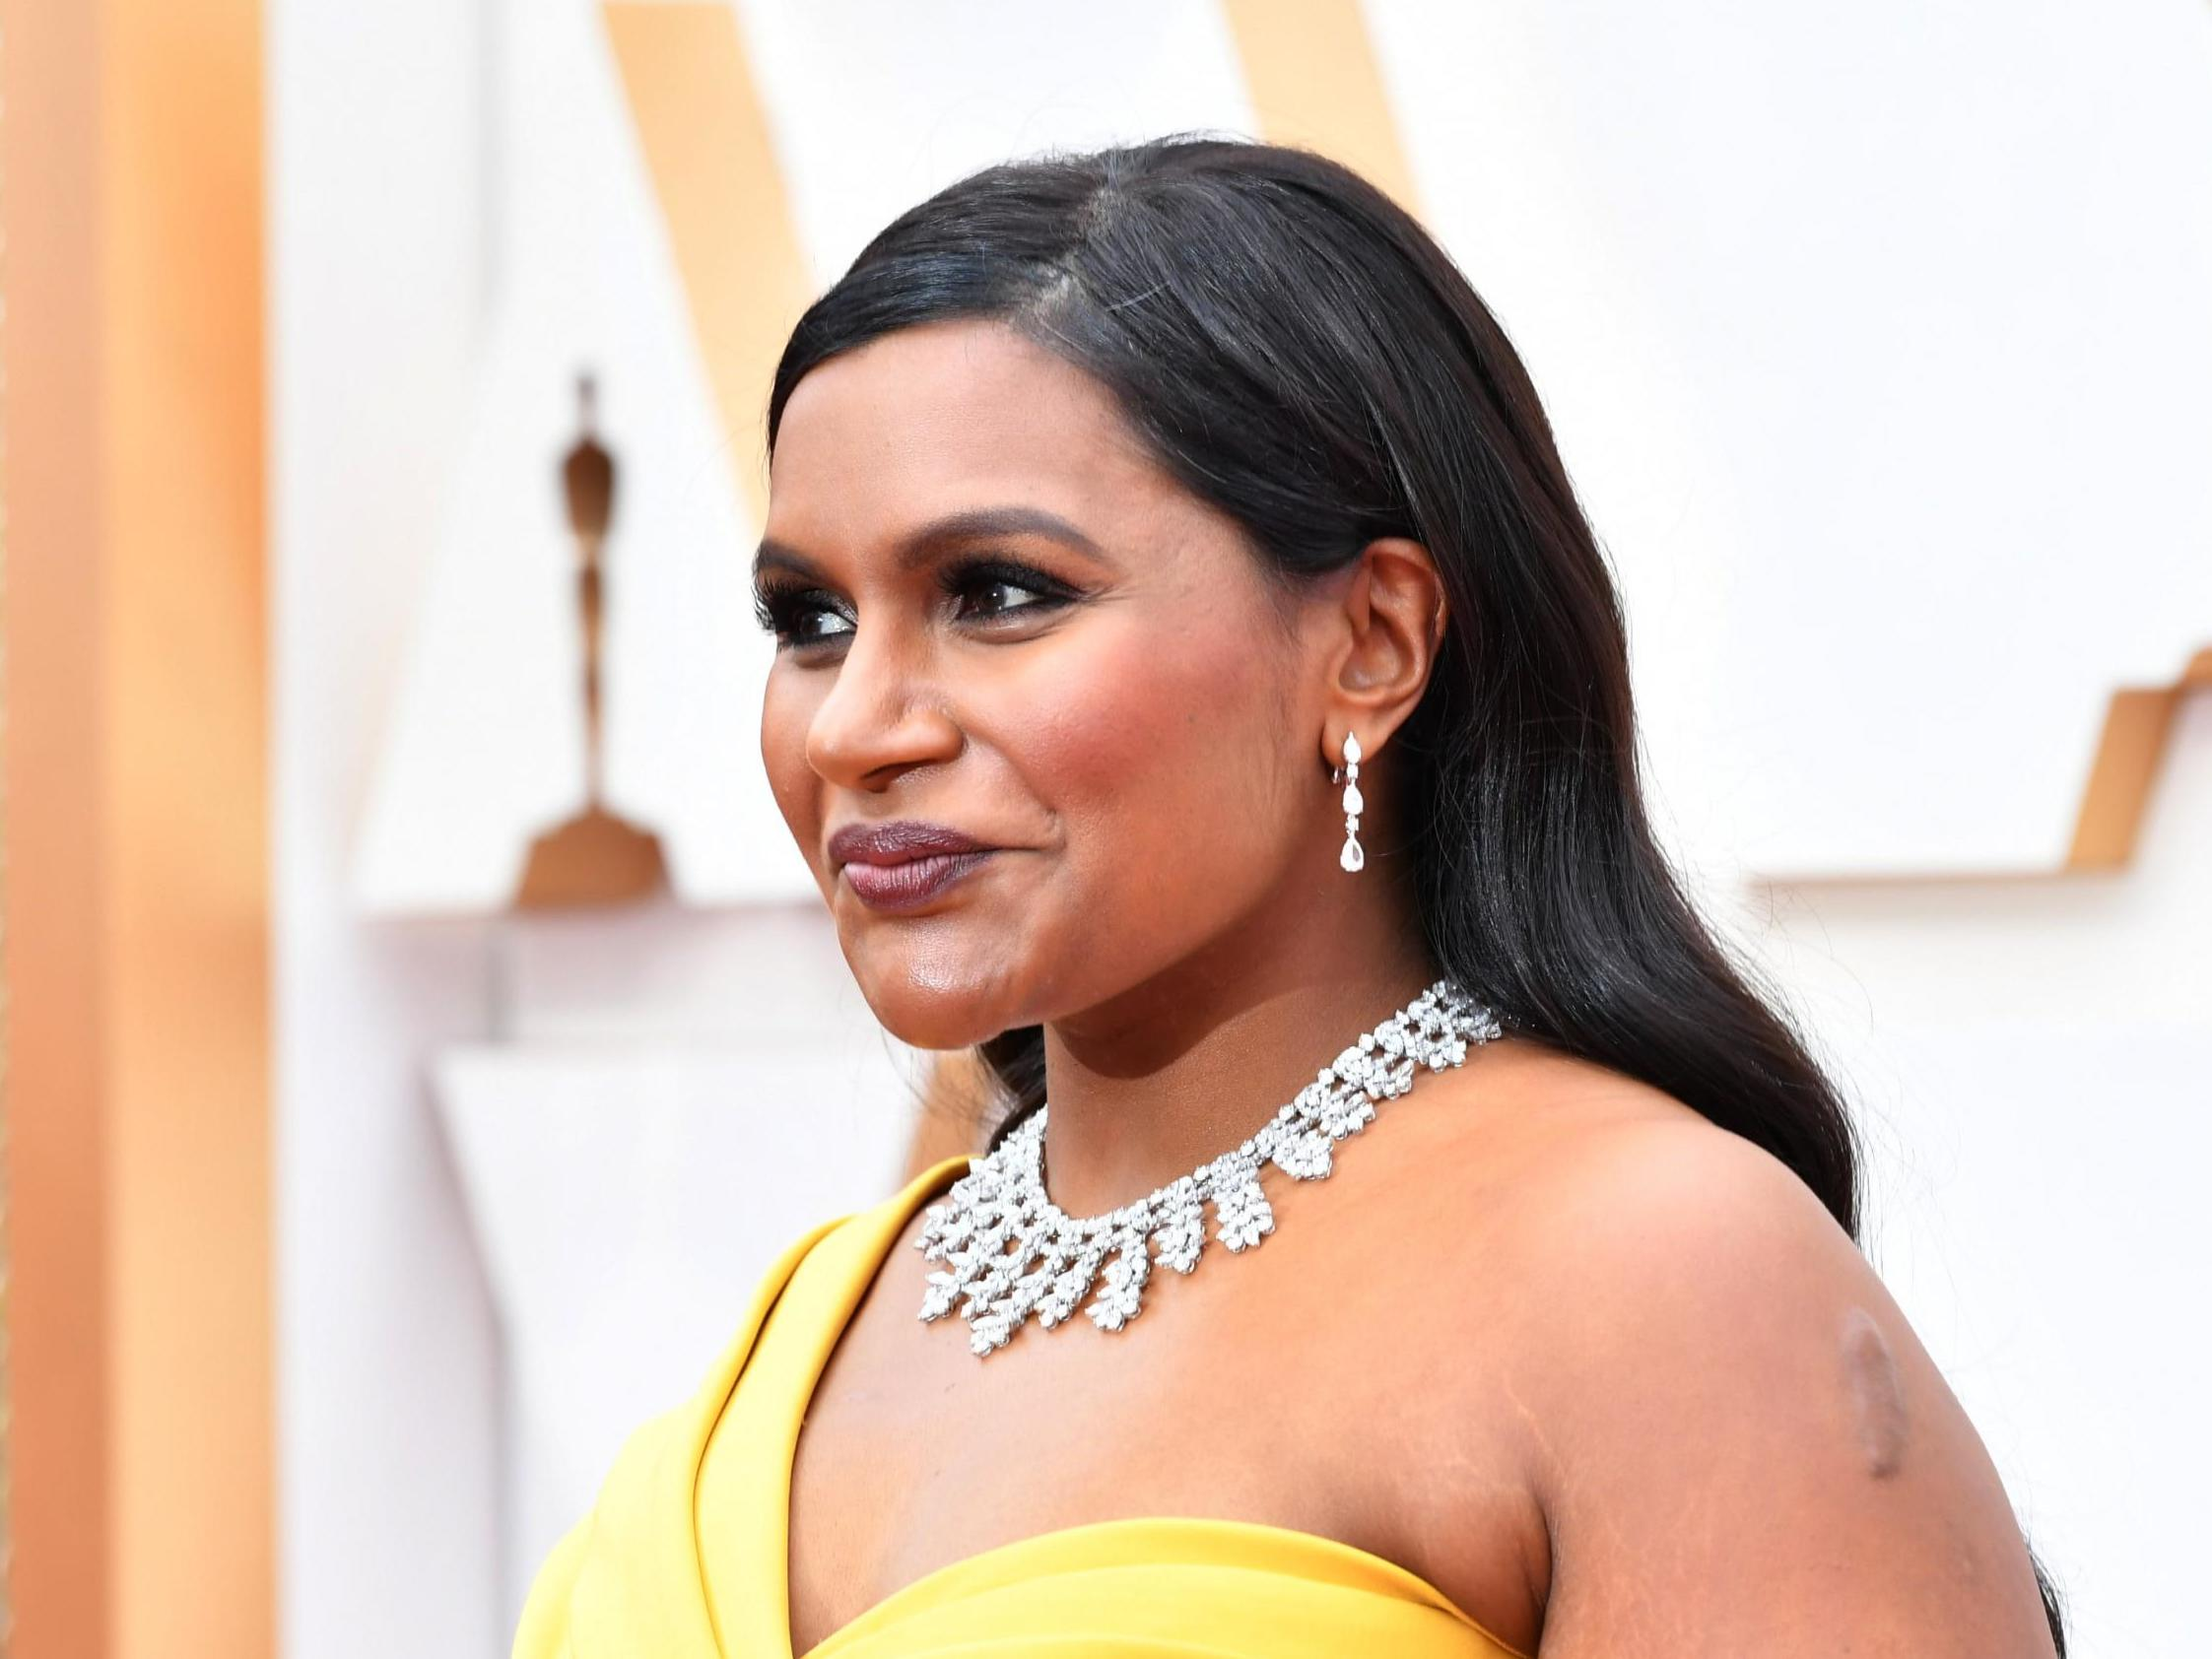 Mindy Kaling Criticises Lack Of Diversity On Oscars Red Carpet It Would Be Nice If More People Of Colour Were Nominated The Independent The Independent